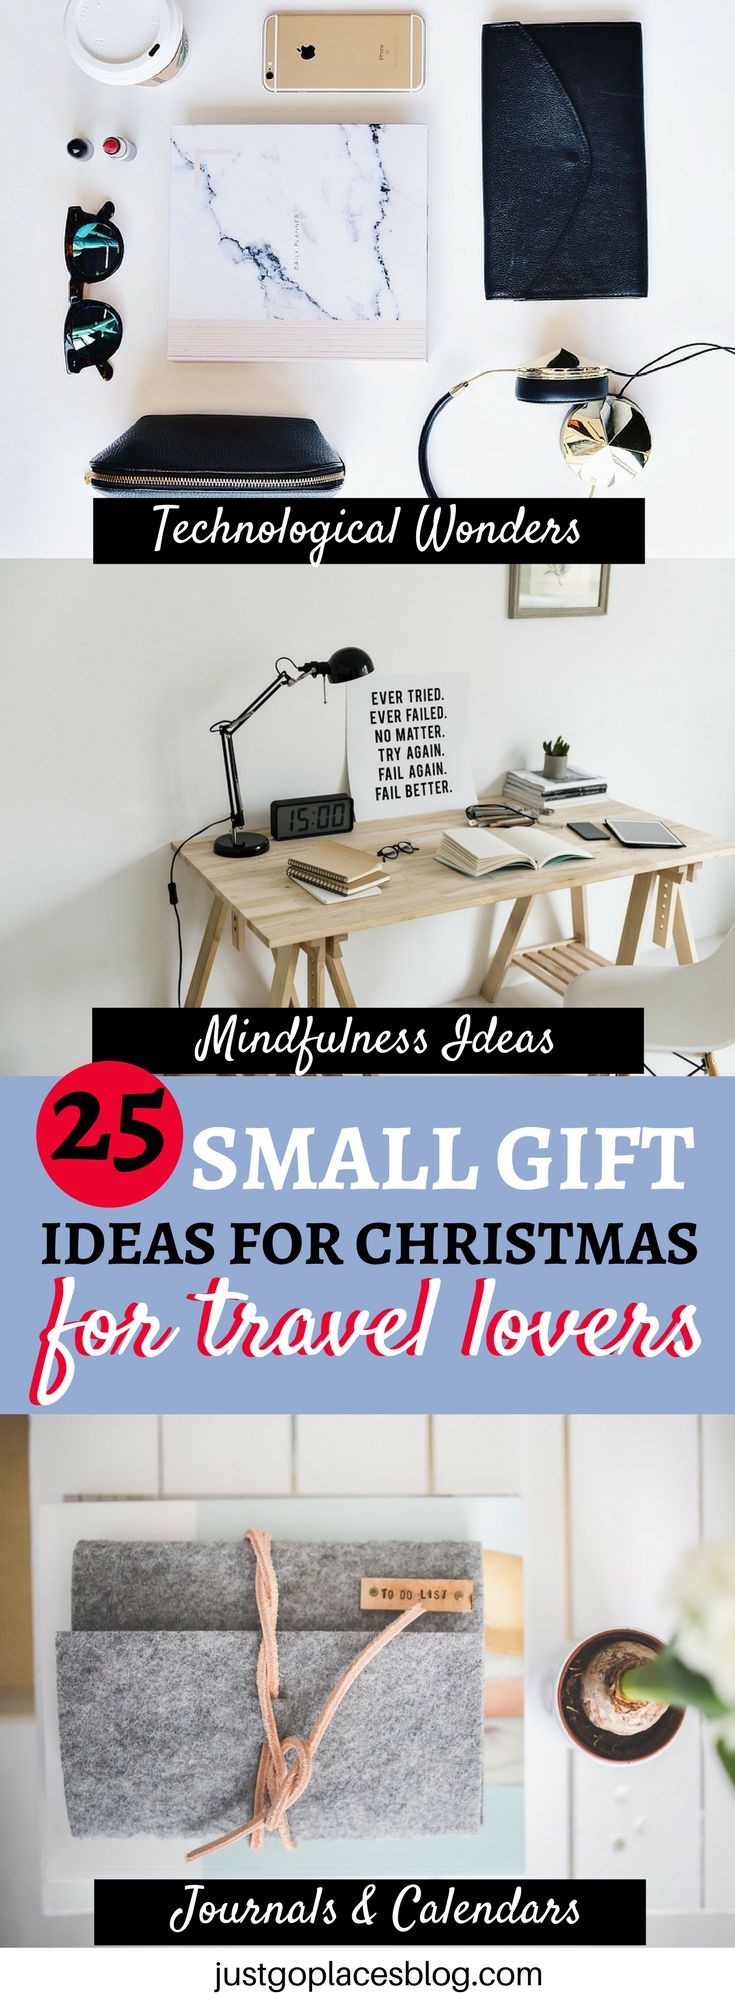 Christmas Season is coming and here's a list of the Top 25 Gift Ideas for Travel Loving Families and Friends!!! Christmas Ideas for Gifts | Christmas Gift Ideas | Christmas Travel Ideas #ChristmasIdeas #ChristmasGifts #ChristmasTravel via @justgoplaces